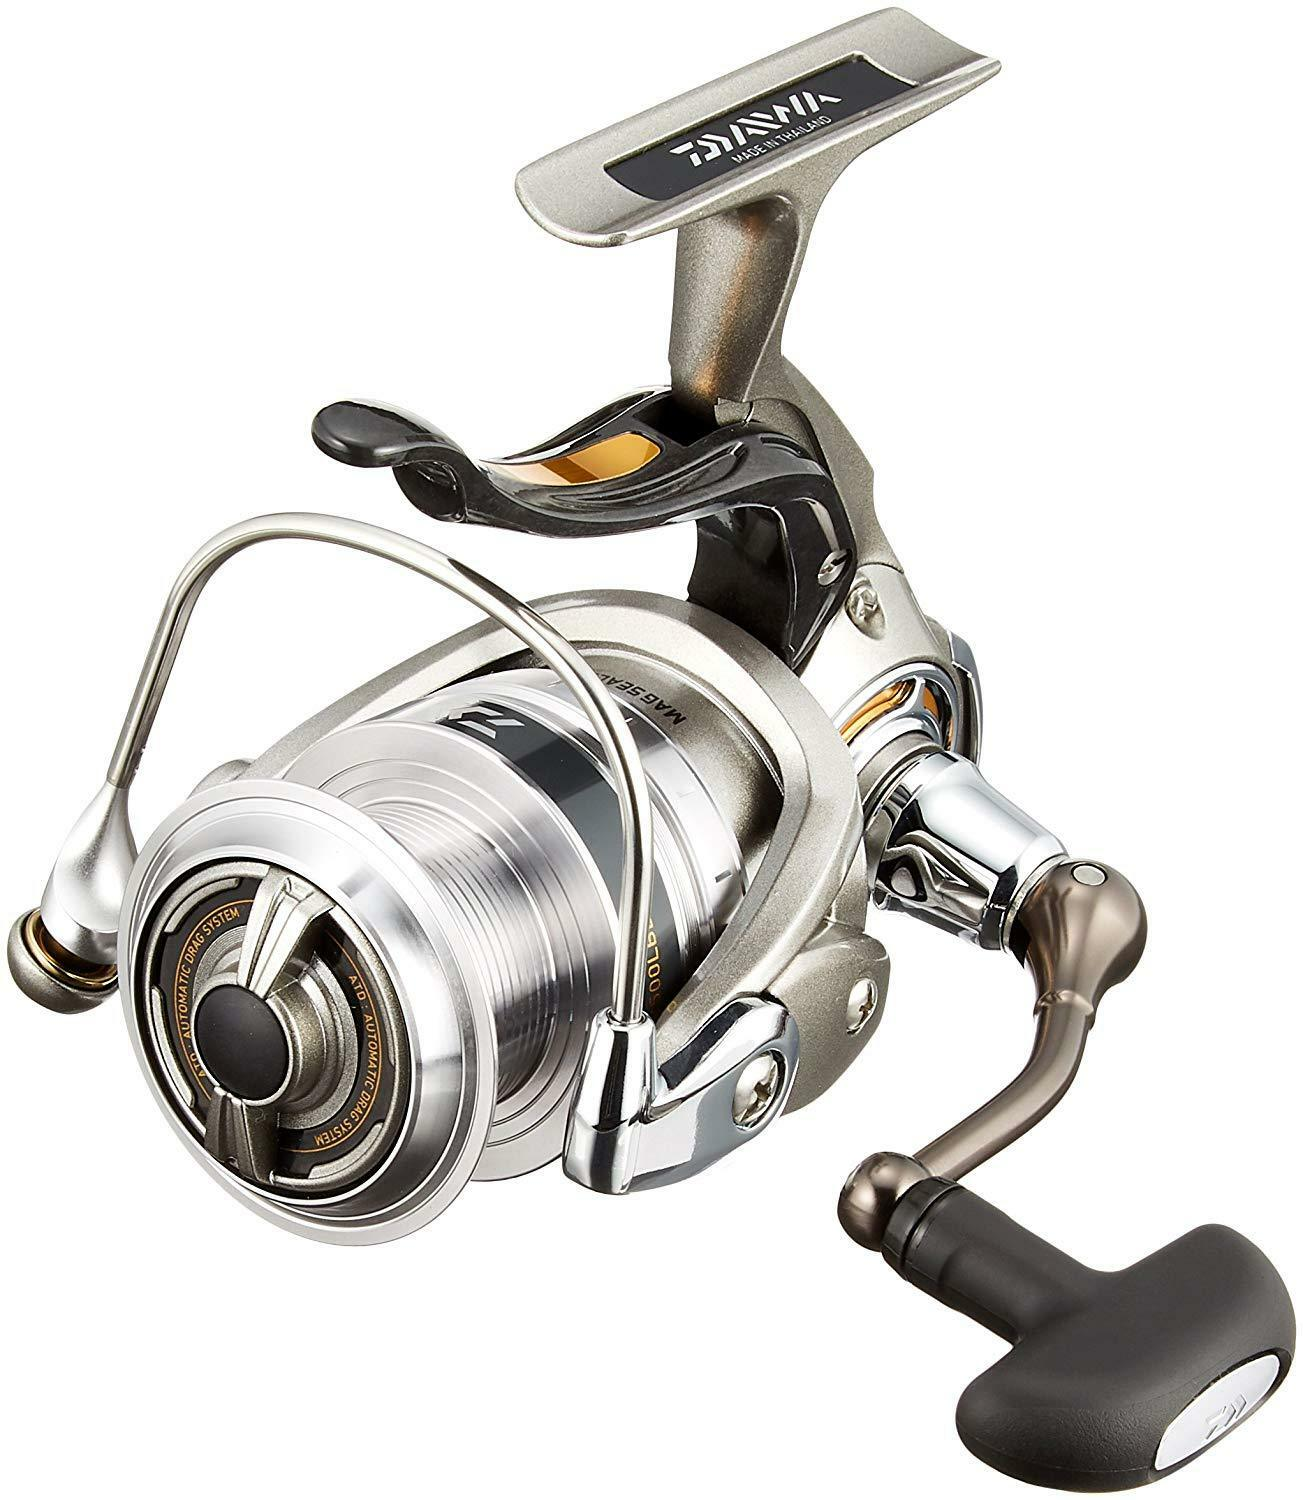 Daiwa Spinning Fishing Reel 16 TRISO 2500 LBD from japan 【Brand New in Box 】